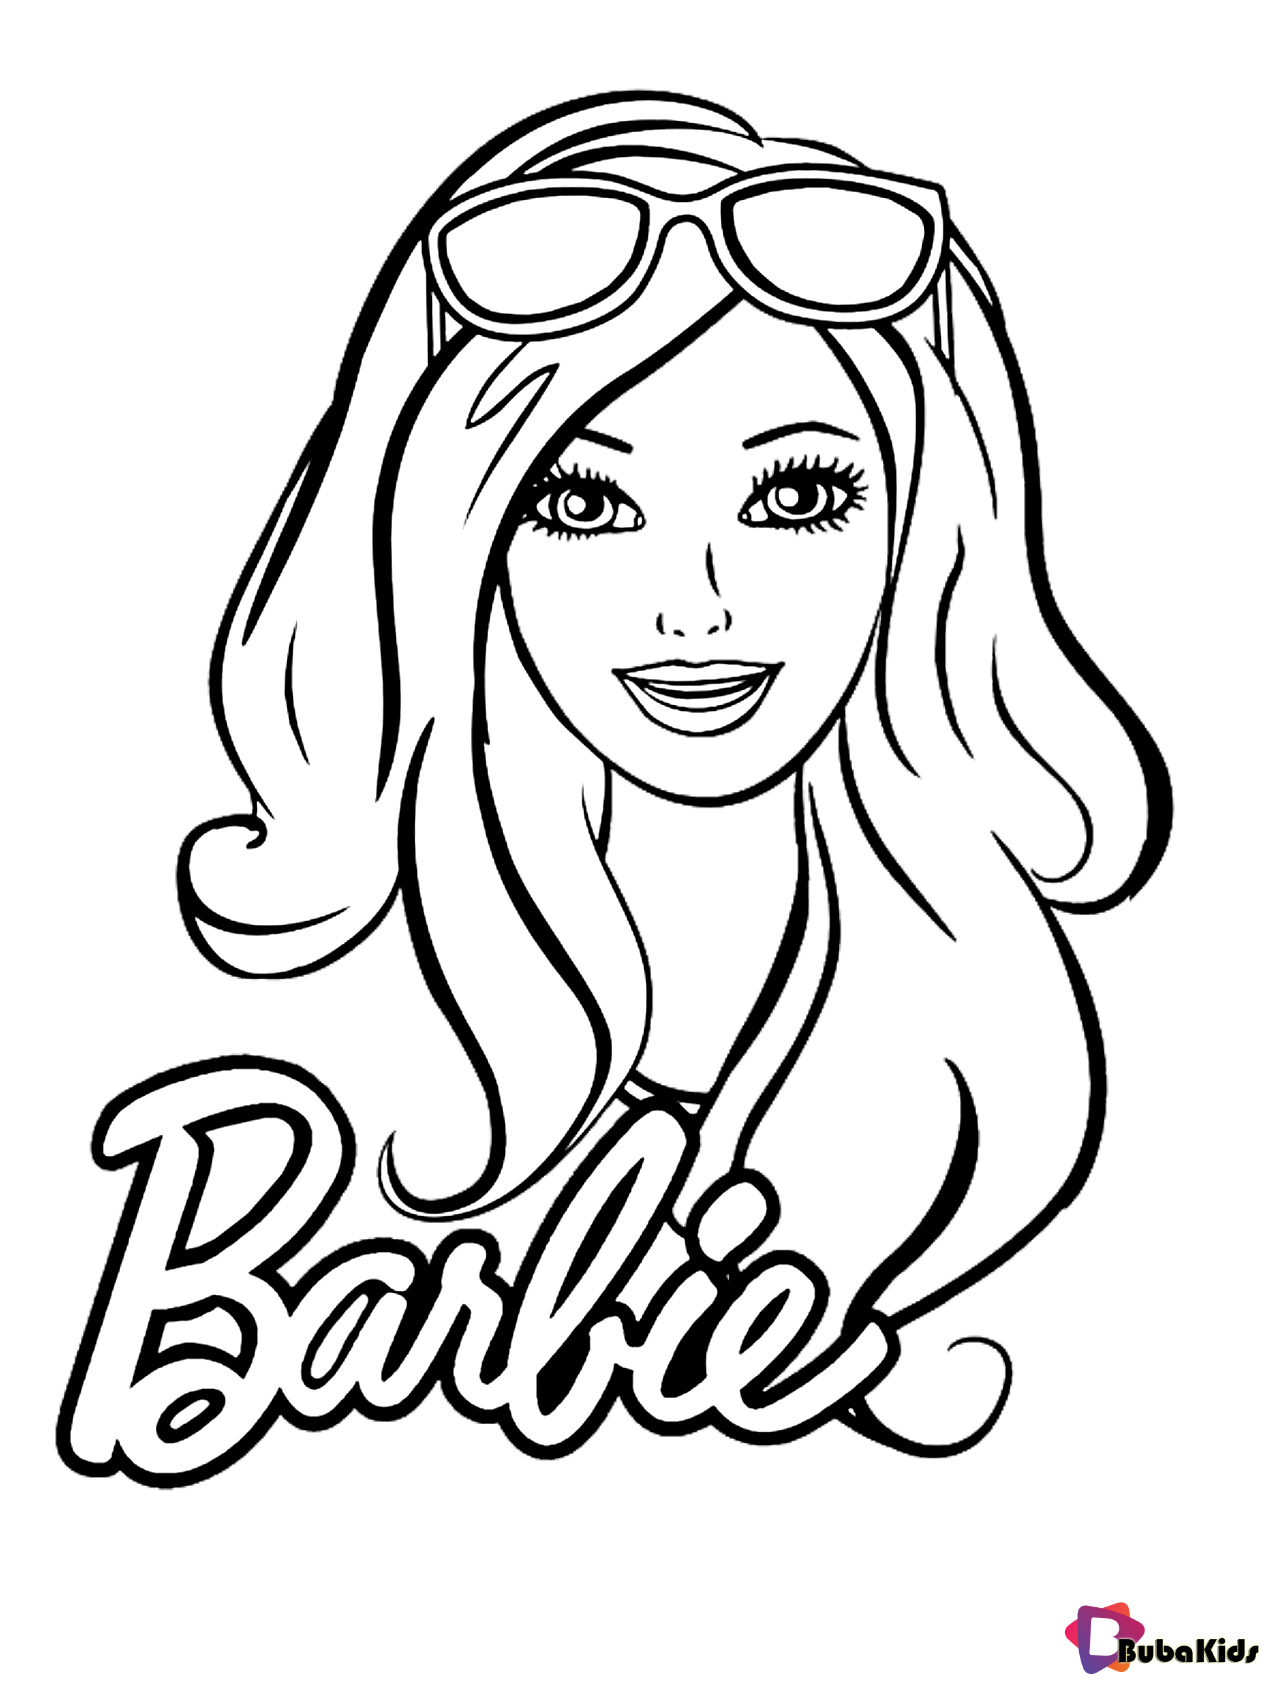 Pin By Tania Lisbeth On Mascaras Barbie Coloring Pages Barbie Coloring Coloring Pages For Girls